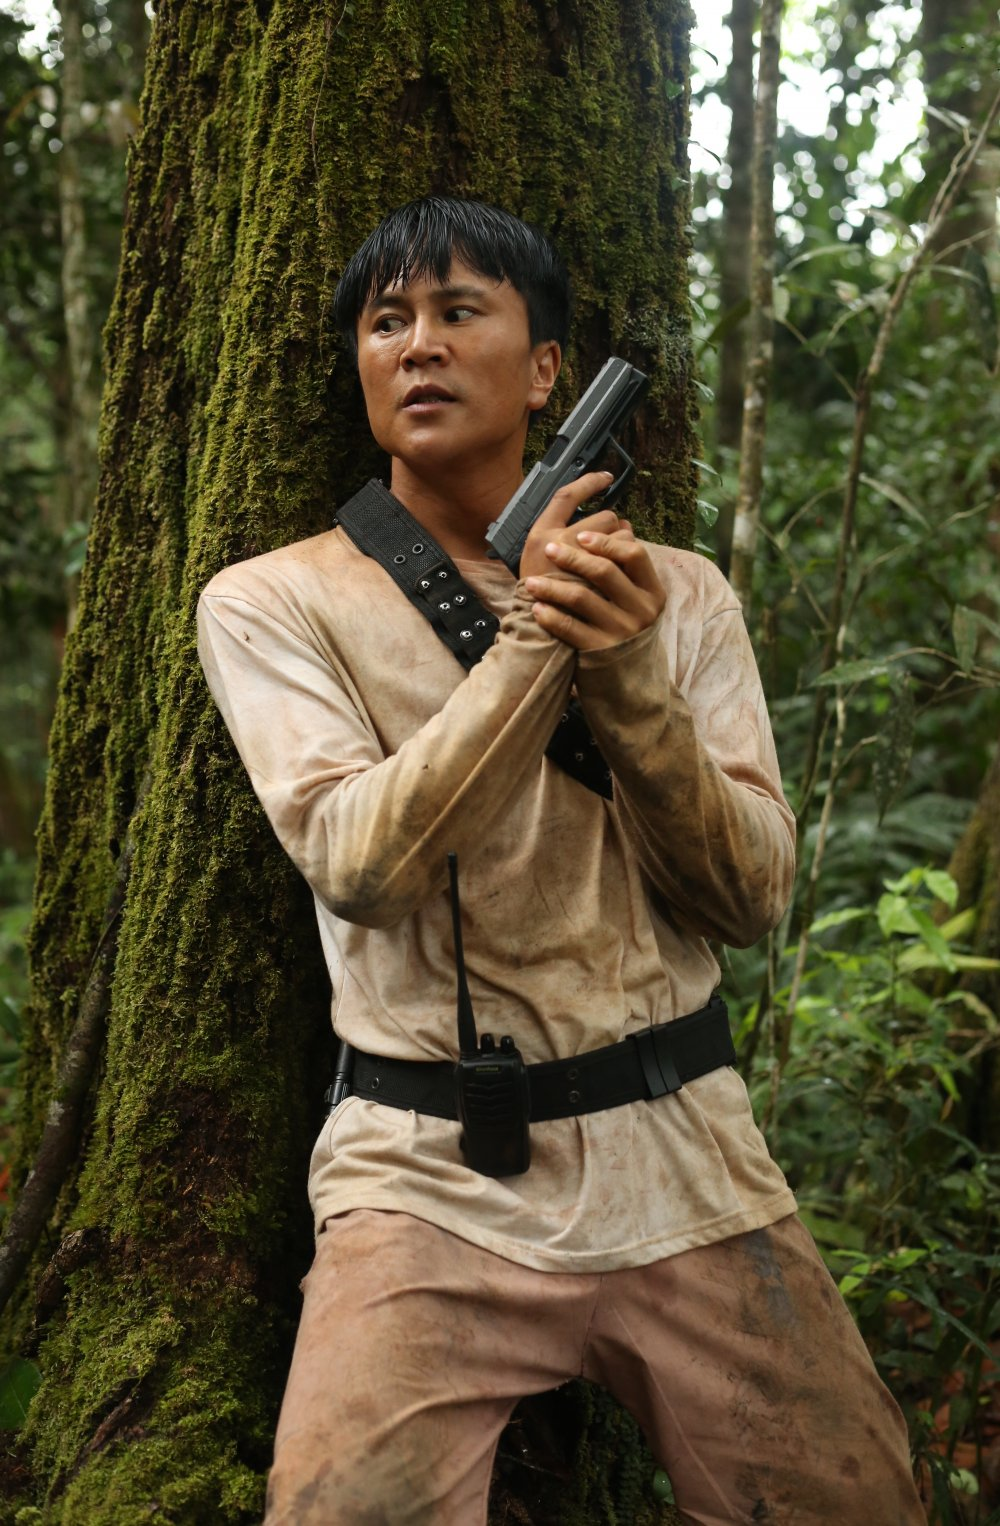 The Prey's leading man, Gu Shang Wei, is a five-time national boxing champion turned charismatic Chinese action star